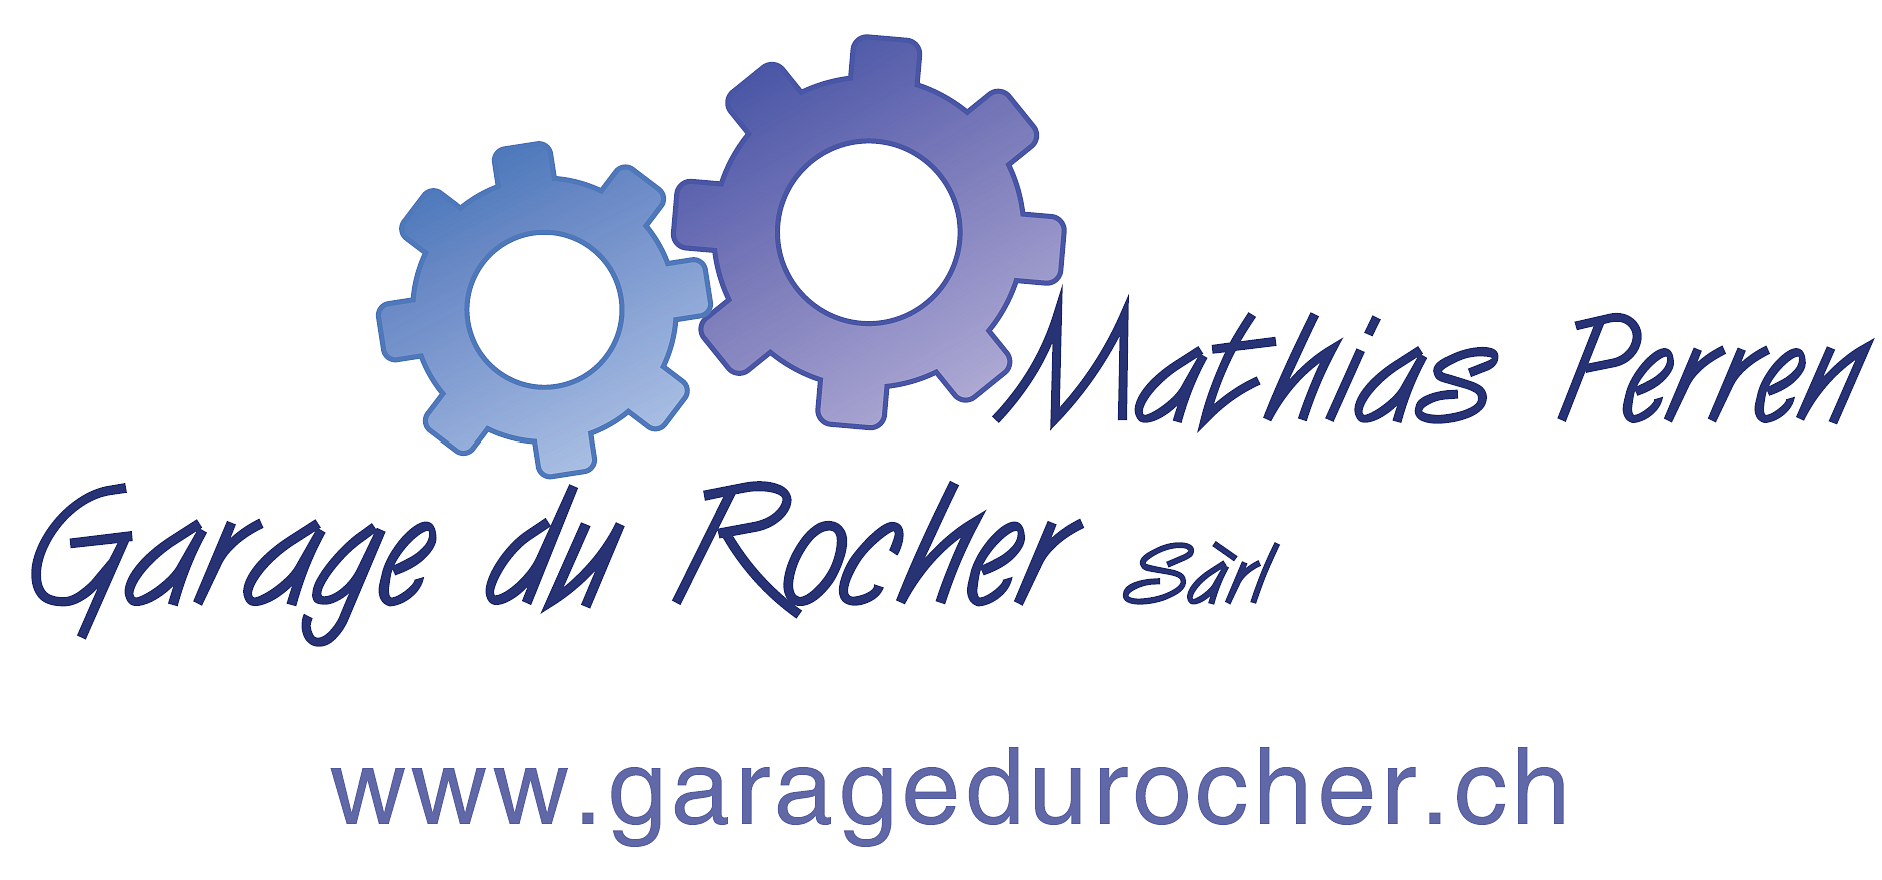 Garage du Rocher Sàrl